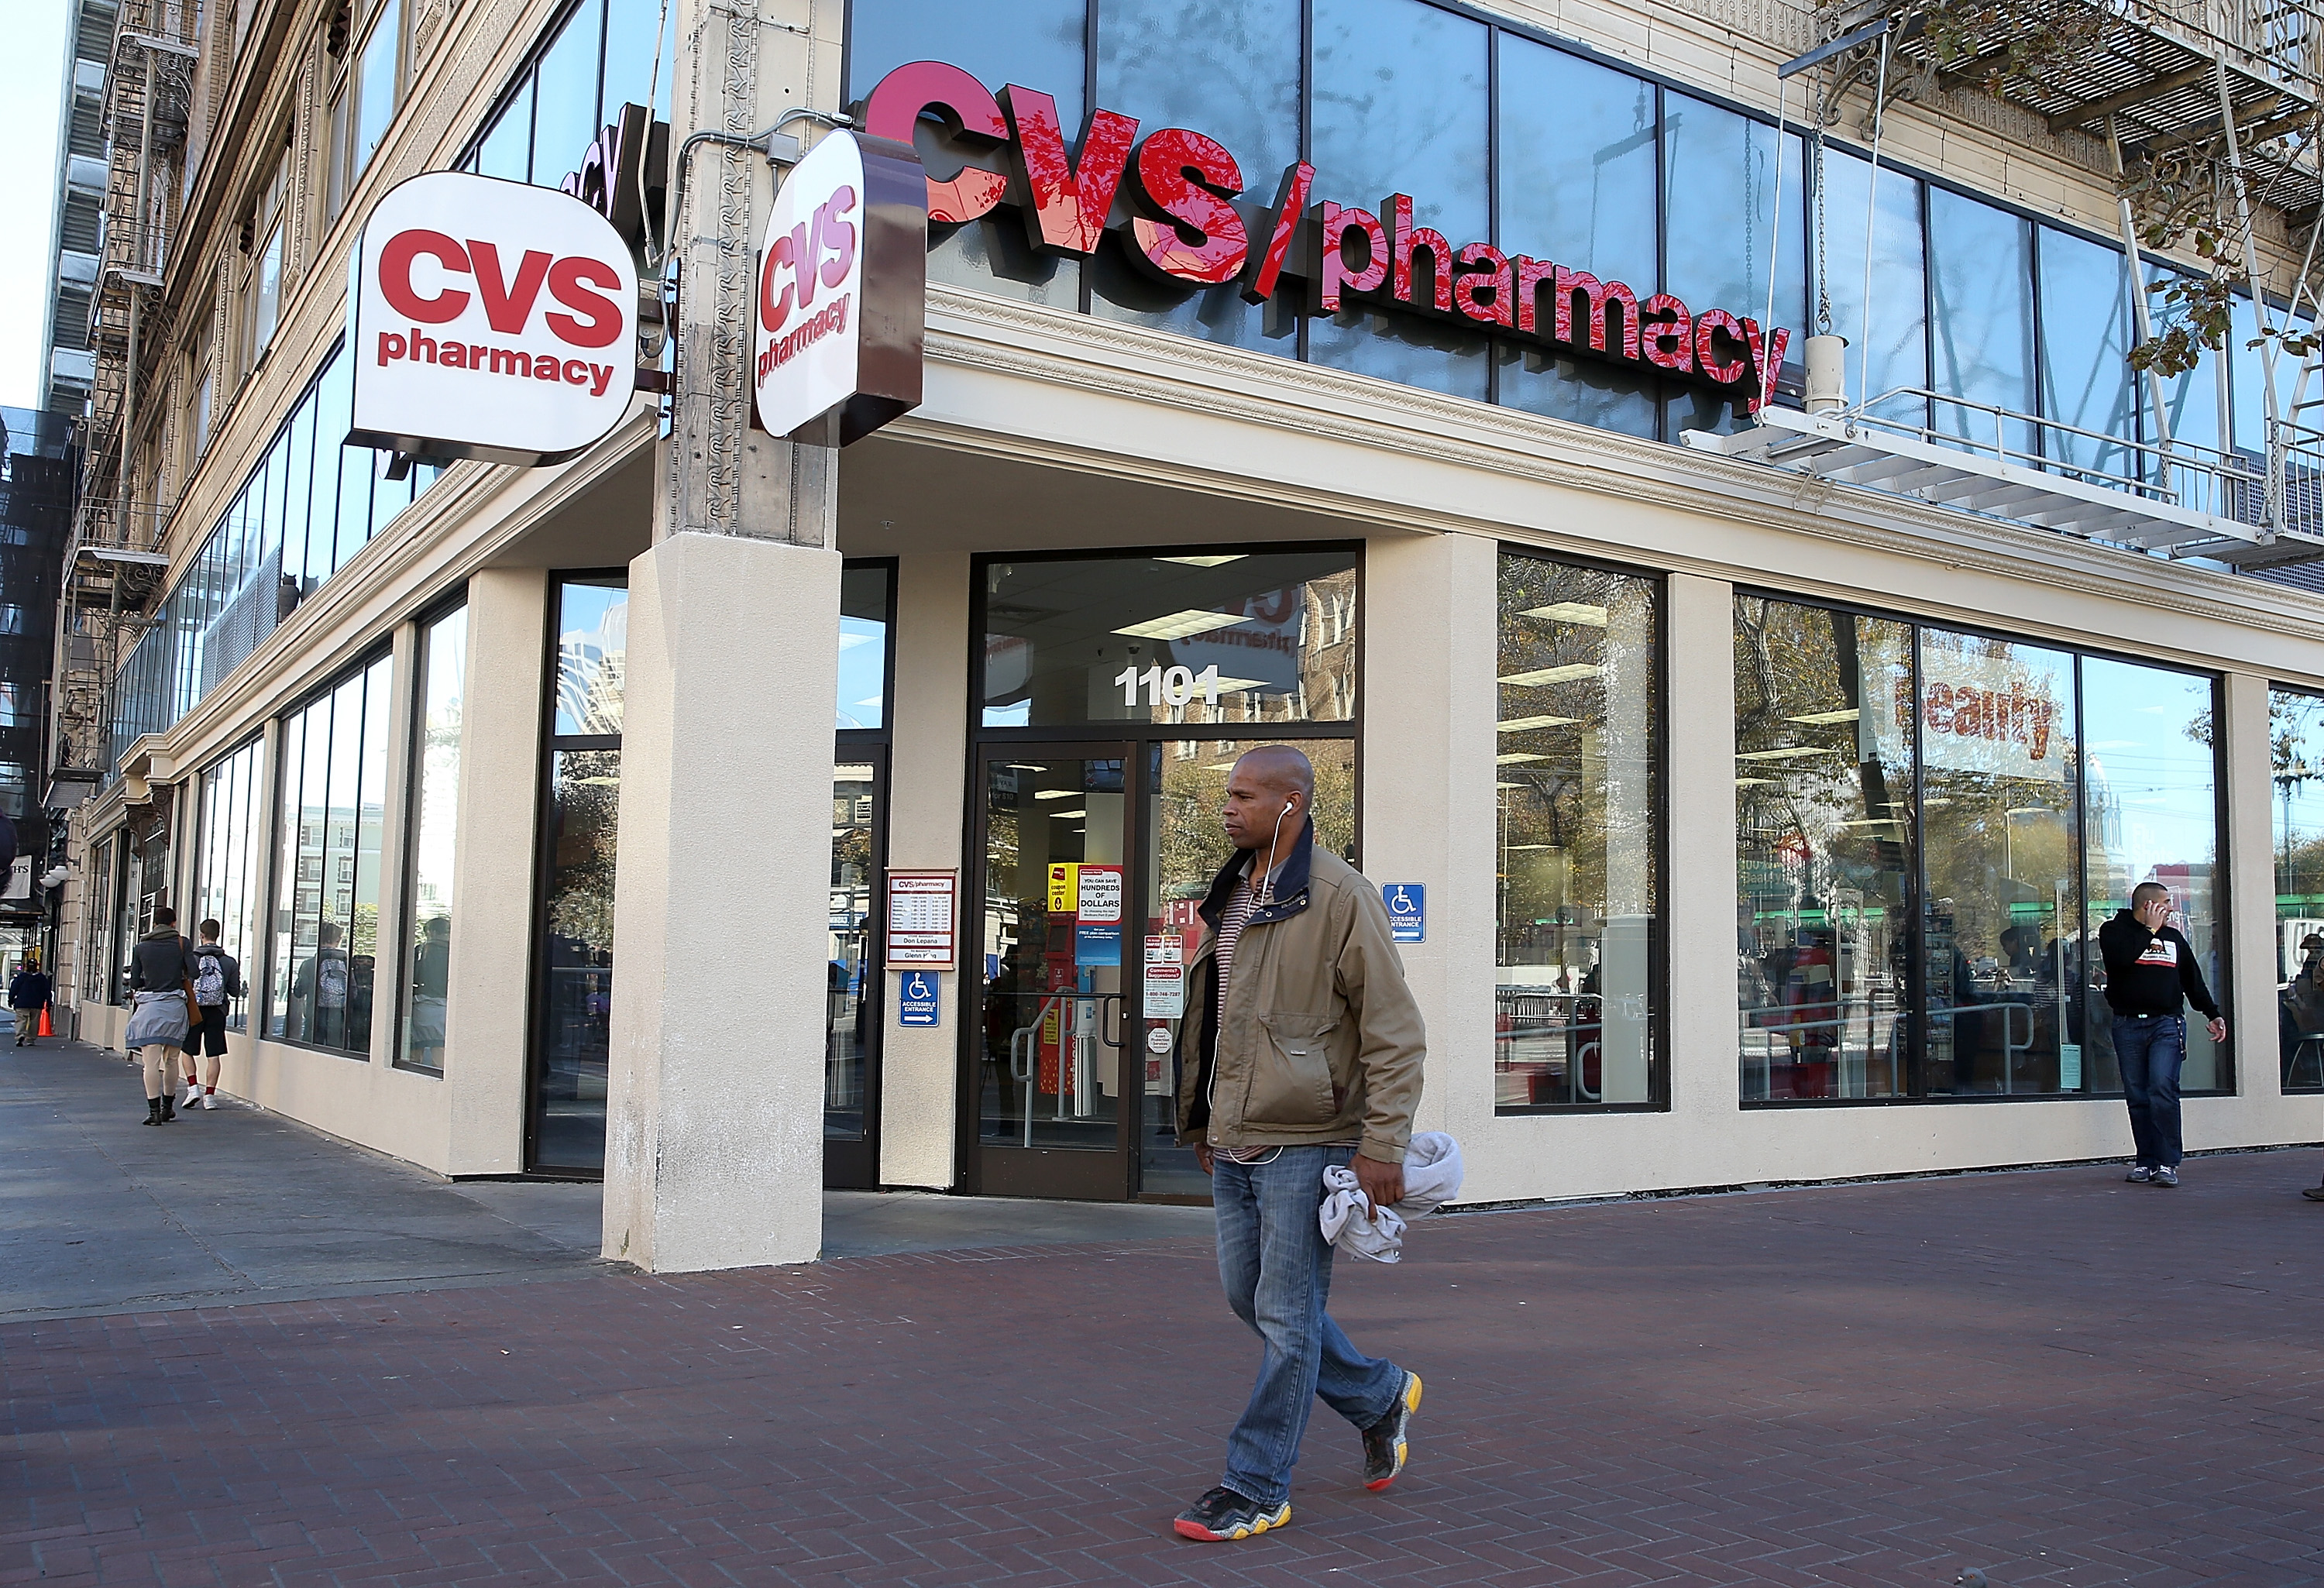 Pedestrians walk by a CVS store on November 5, 2013 in San Francisco, California.